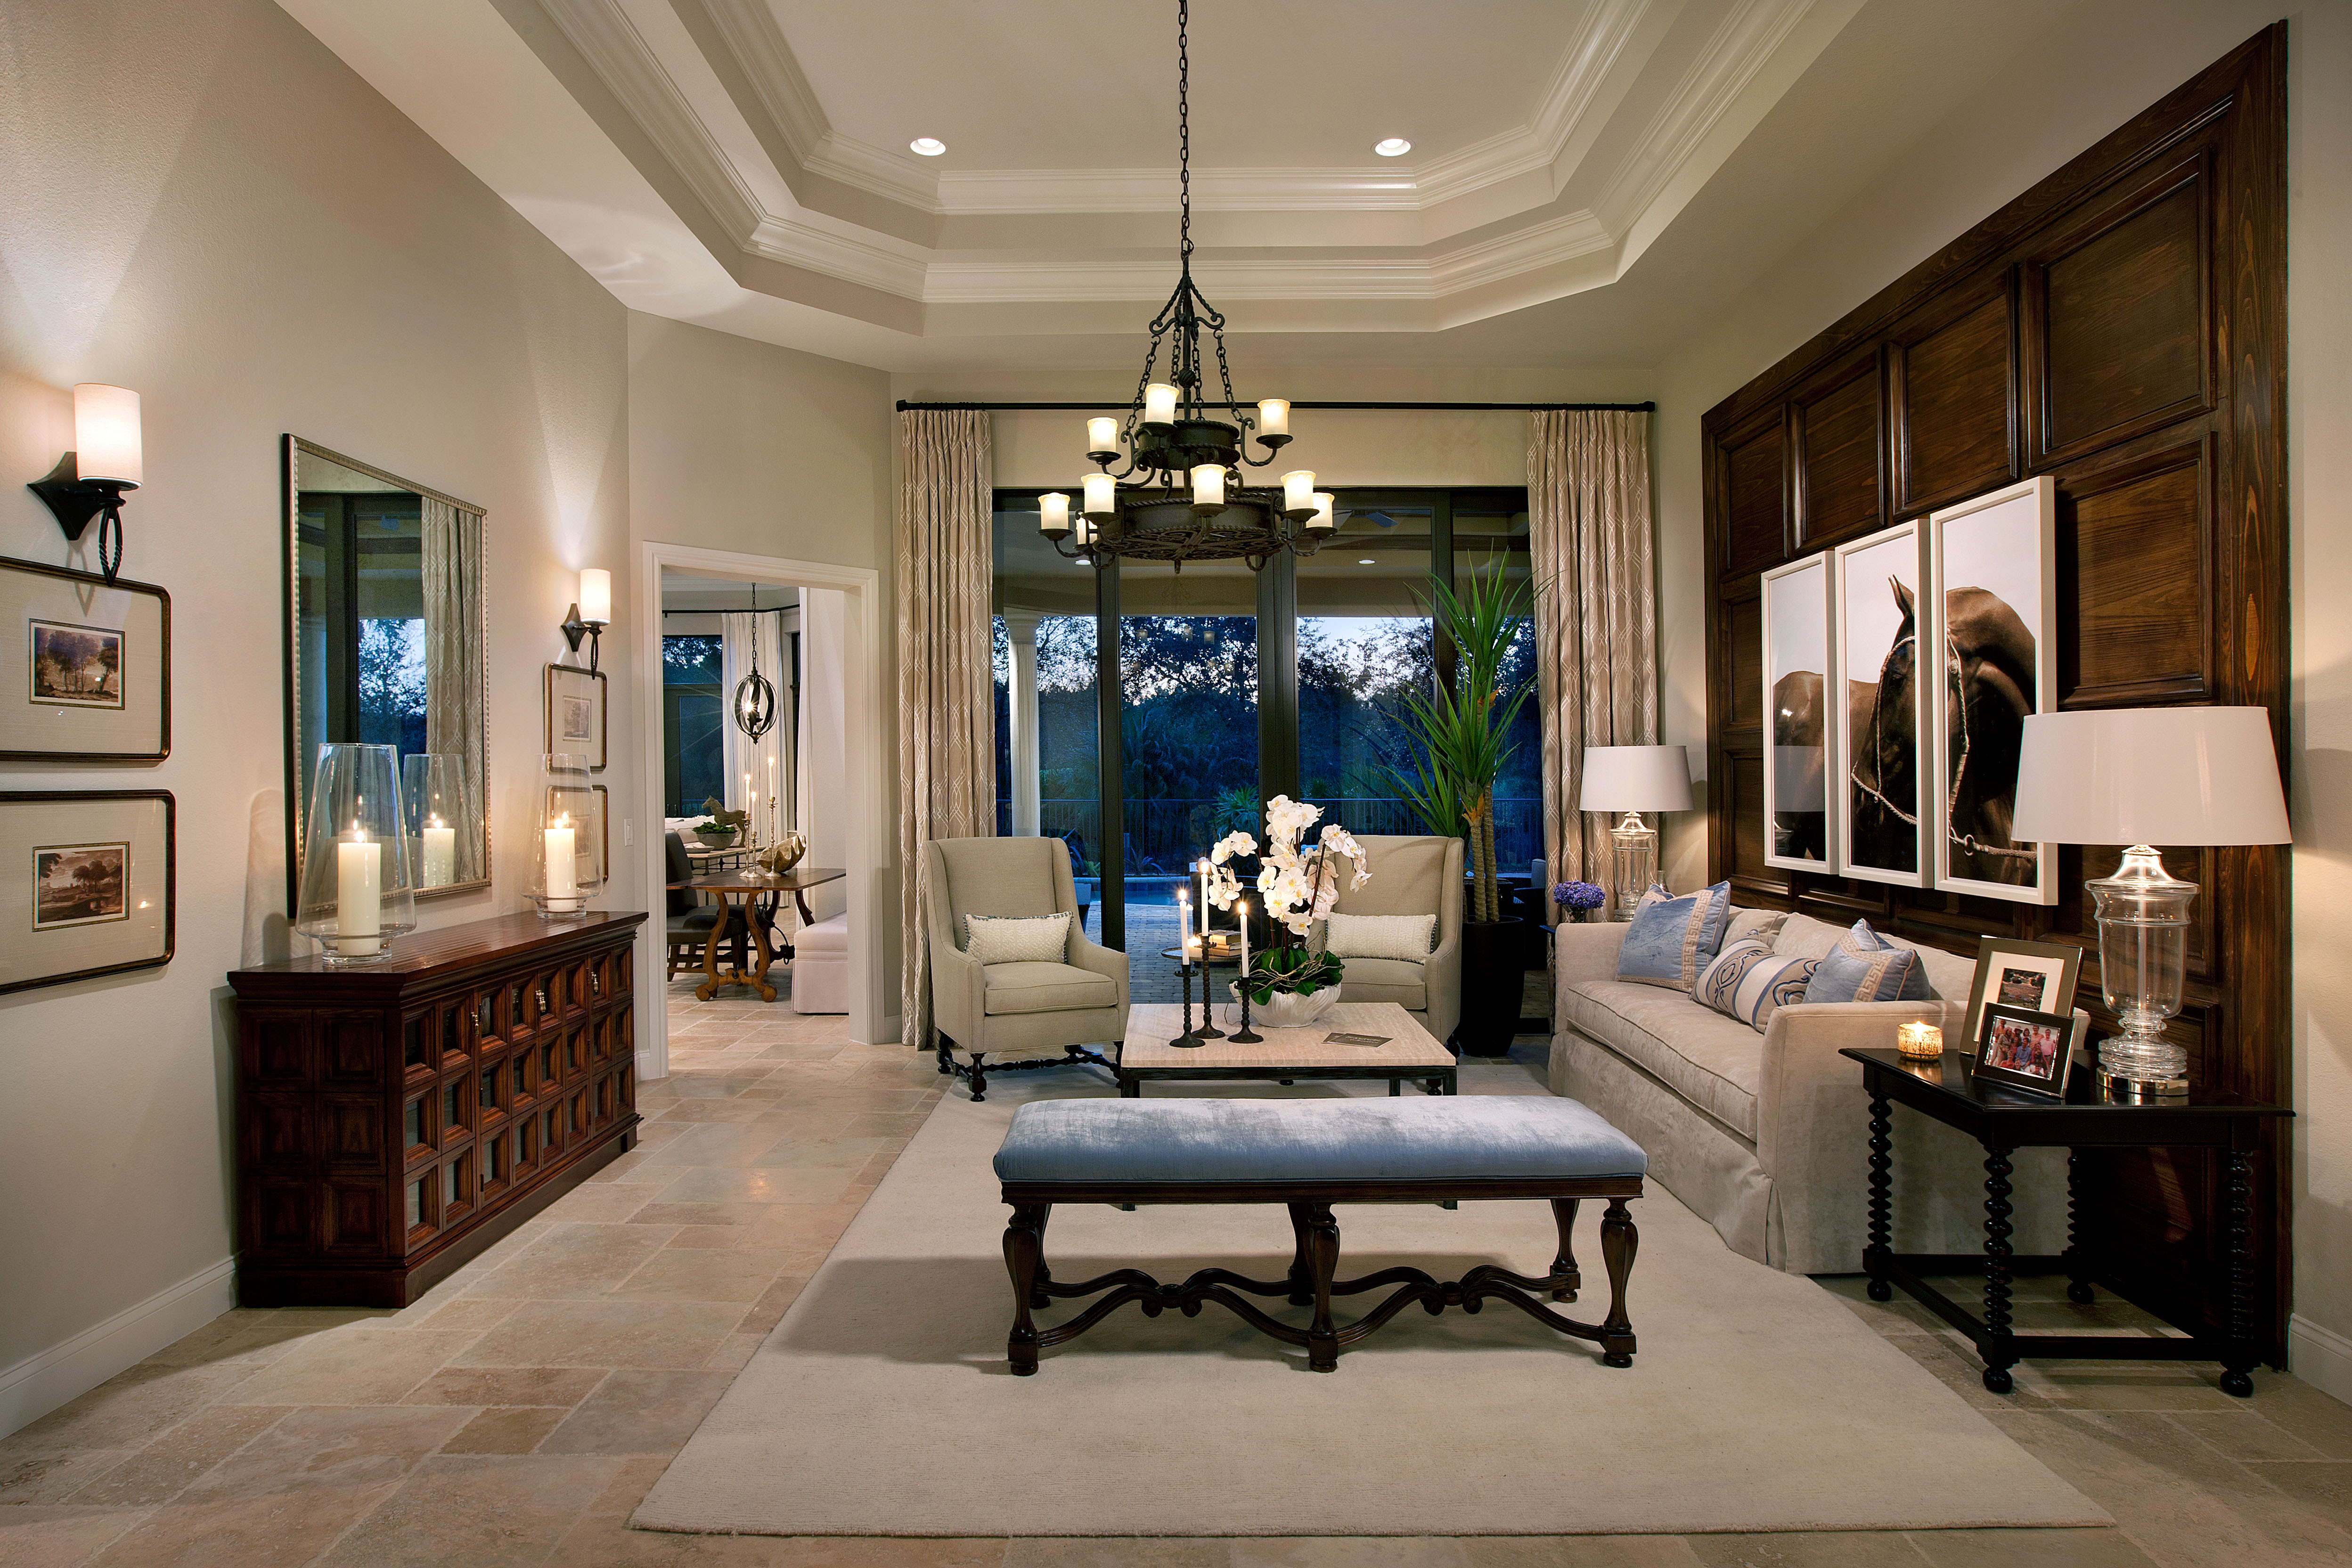 Two Model Homes By Marc Michaels Interior Design Inc Sold In Naples Fl